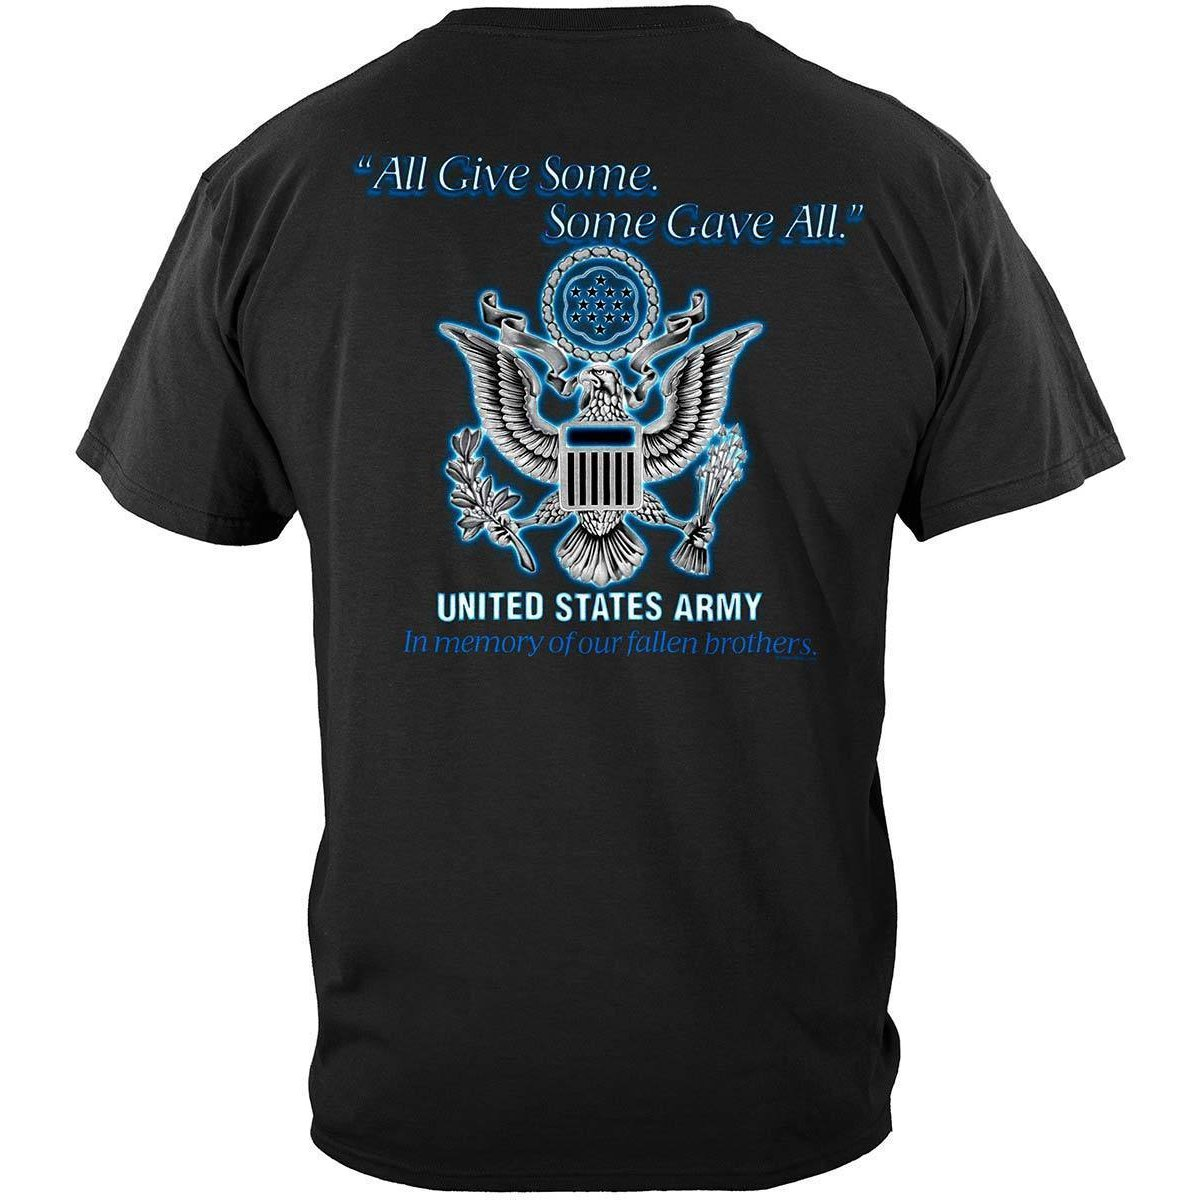 Are You Looking for Unique Army TShirts?